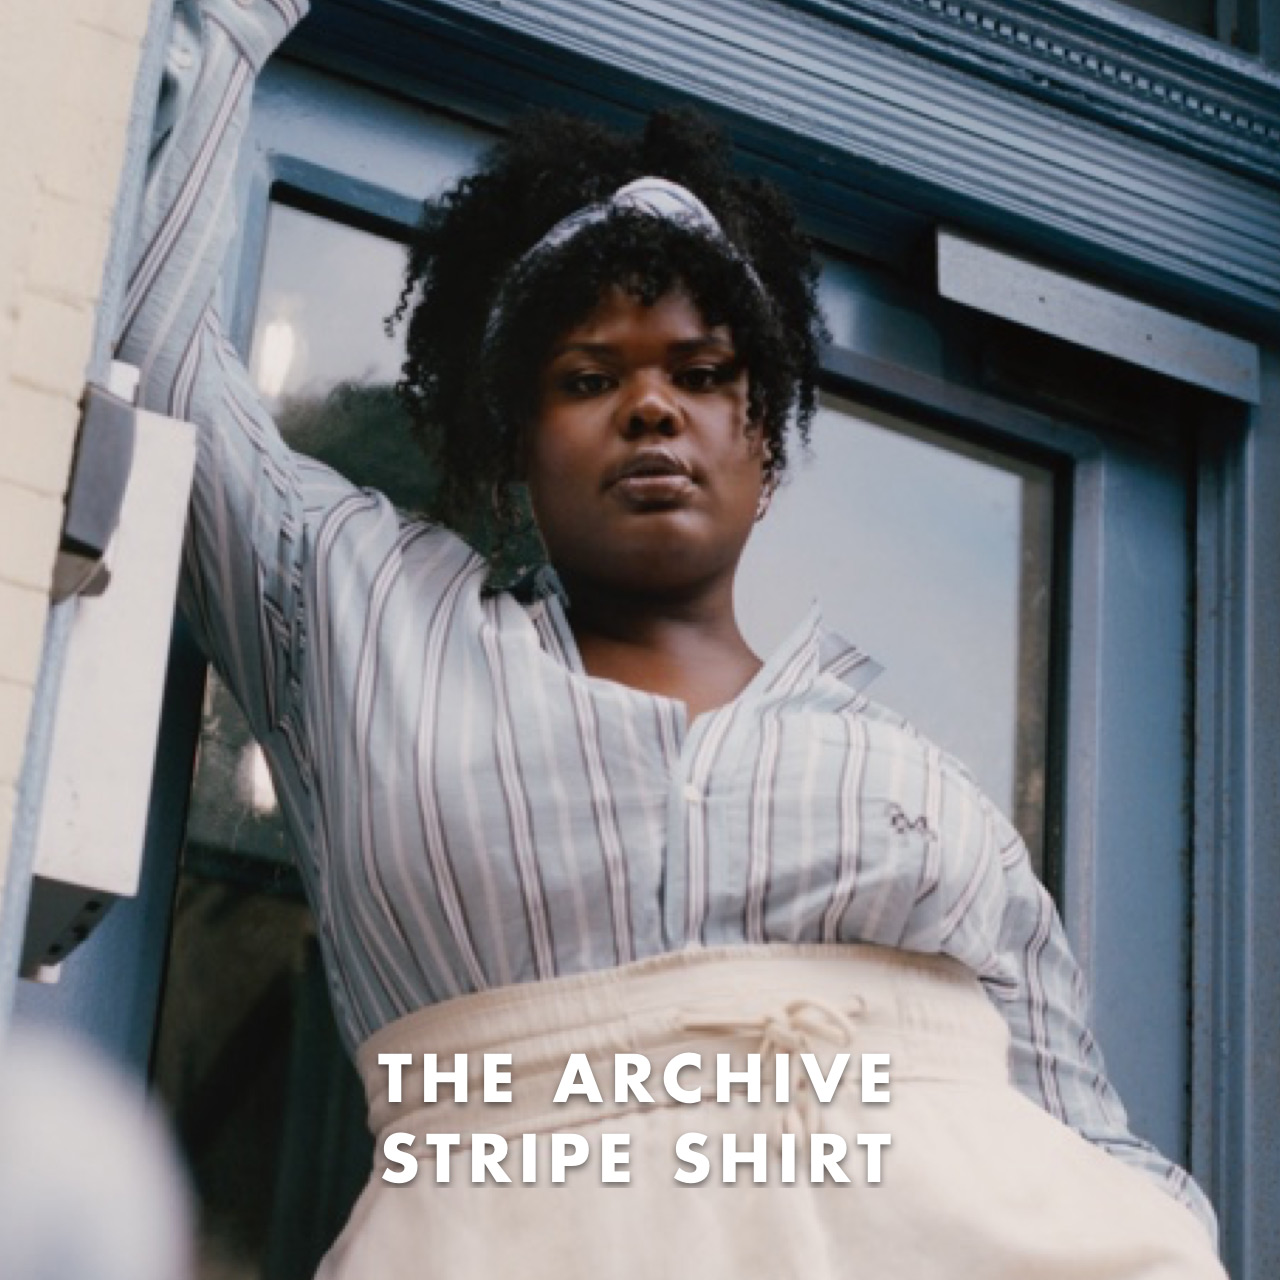 THE ARCHIVE STRIPE SHIRT: A fluid fabric with adjustable sleeves for a fluid style expression.